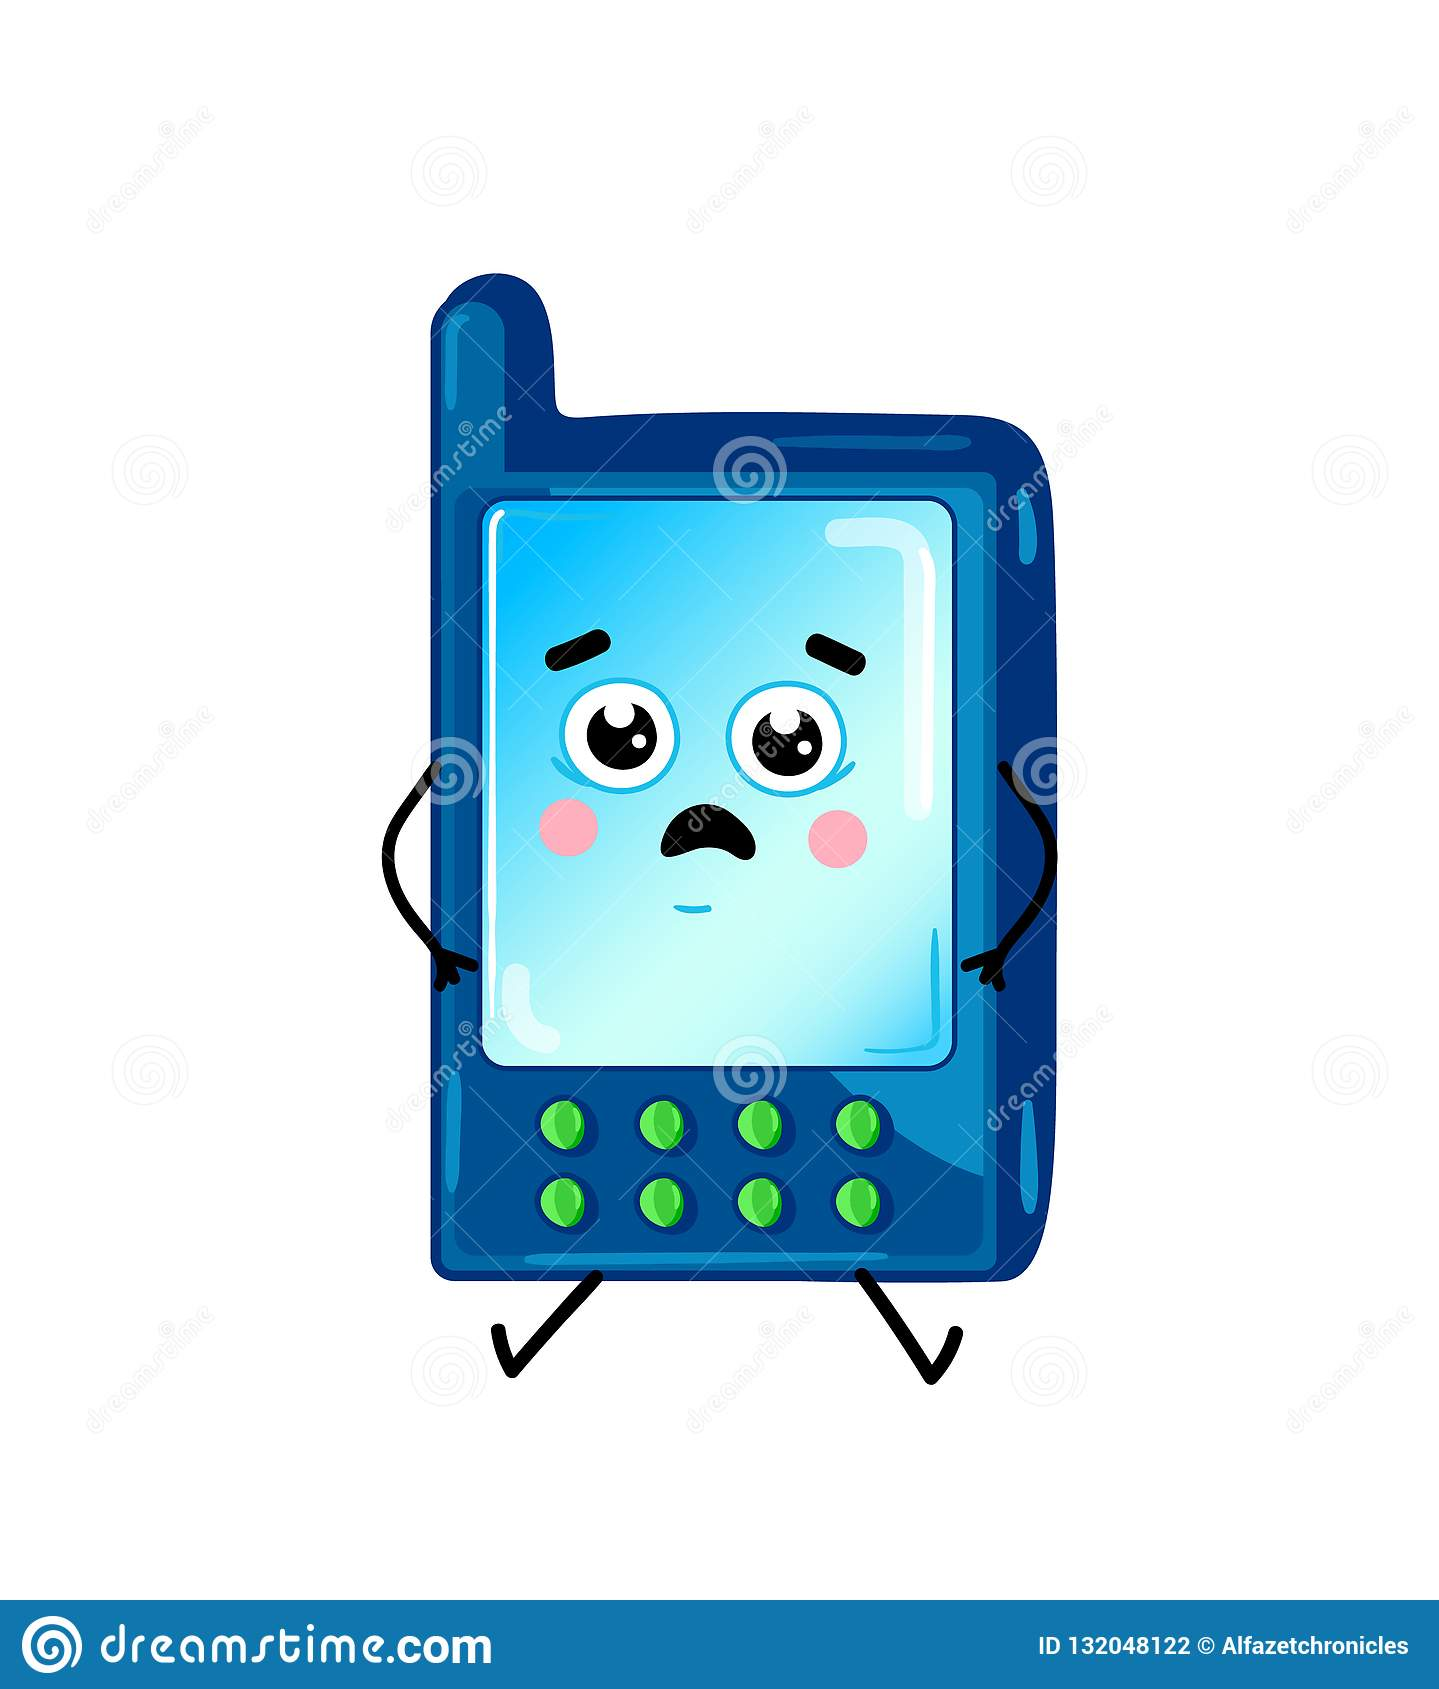 Funny Cartoon Cell Phone Stock Illustrations 2 477 Funny Cartoon Cell Phone Stock Illustrations Vectors Clipart Dreamstime